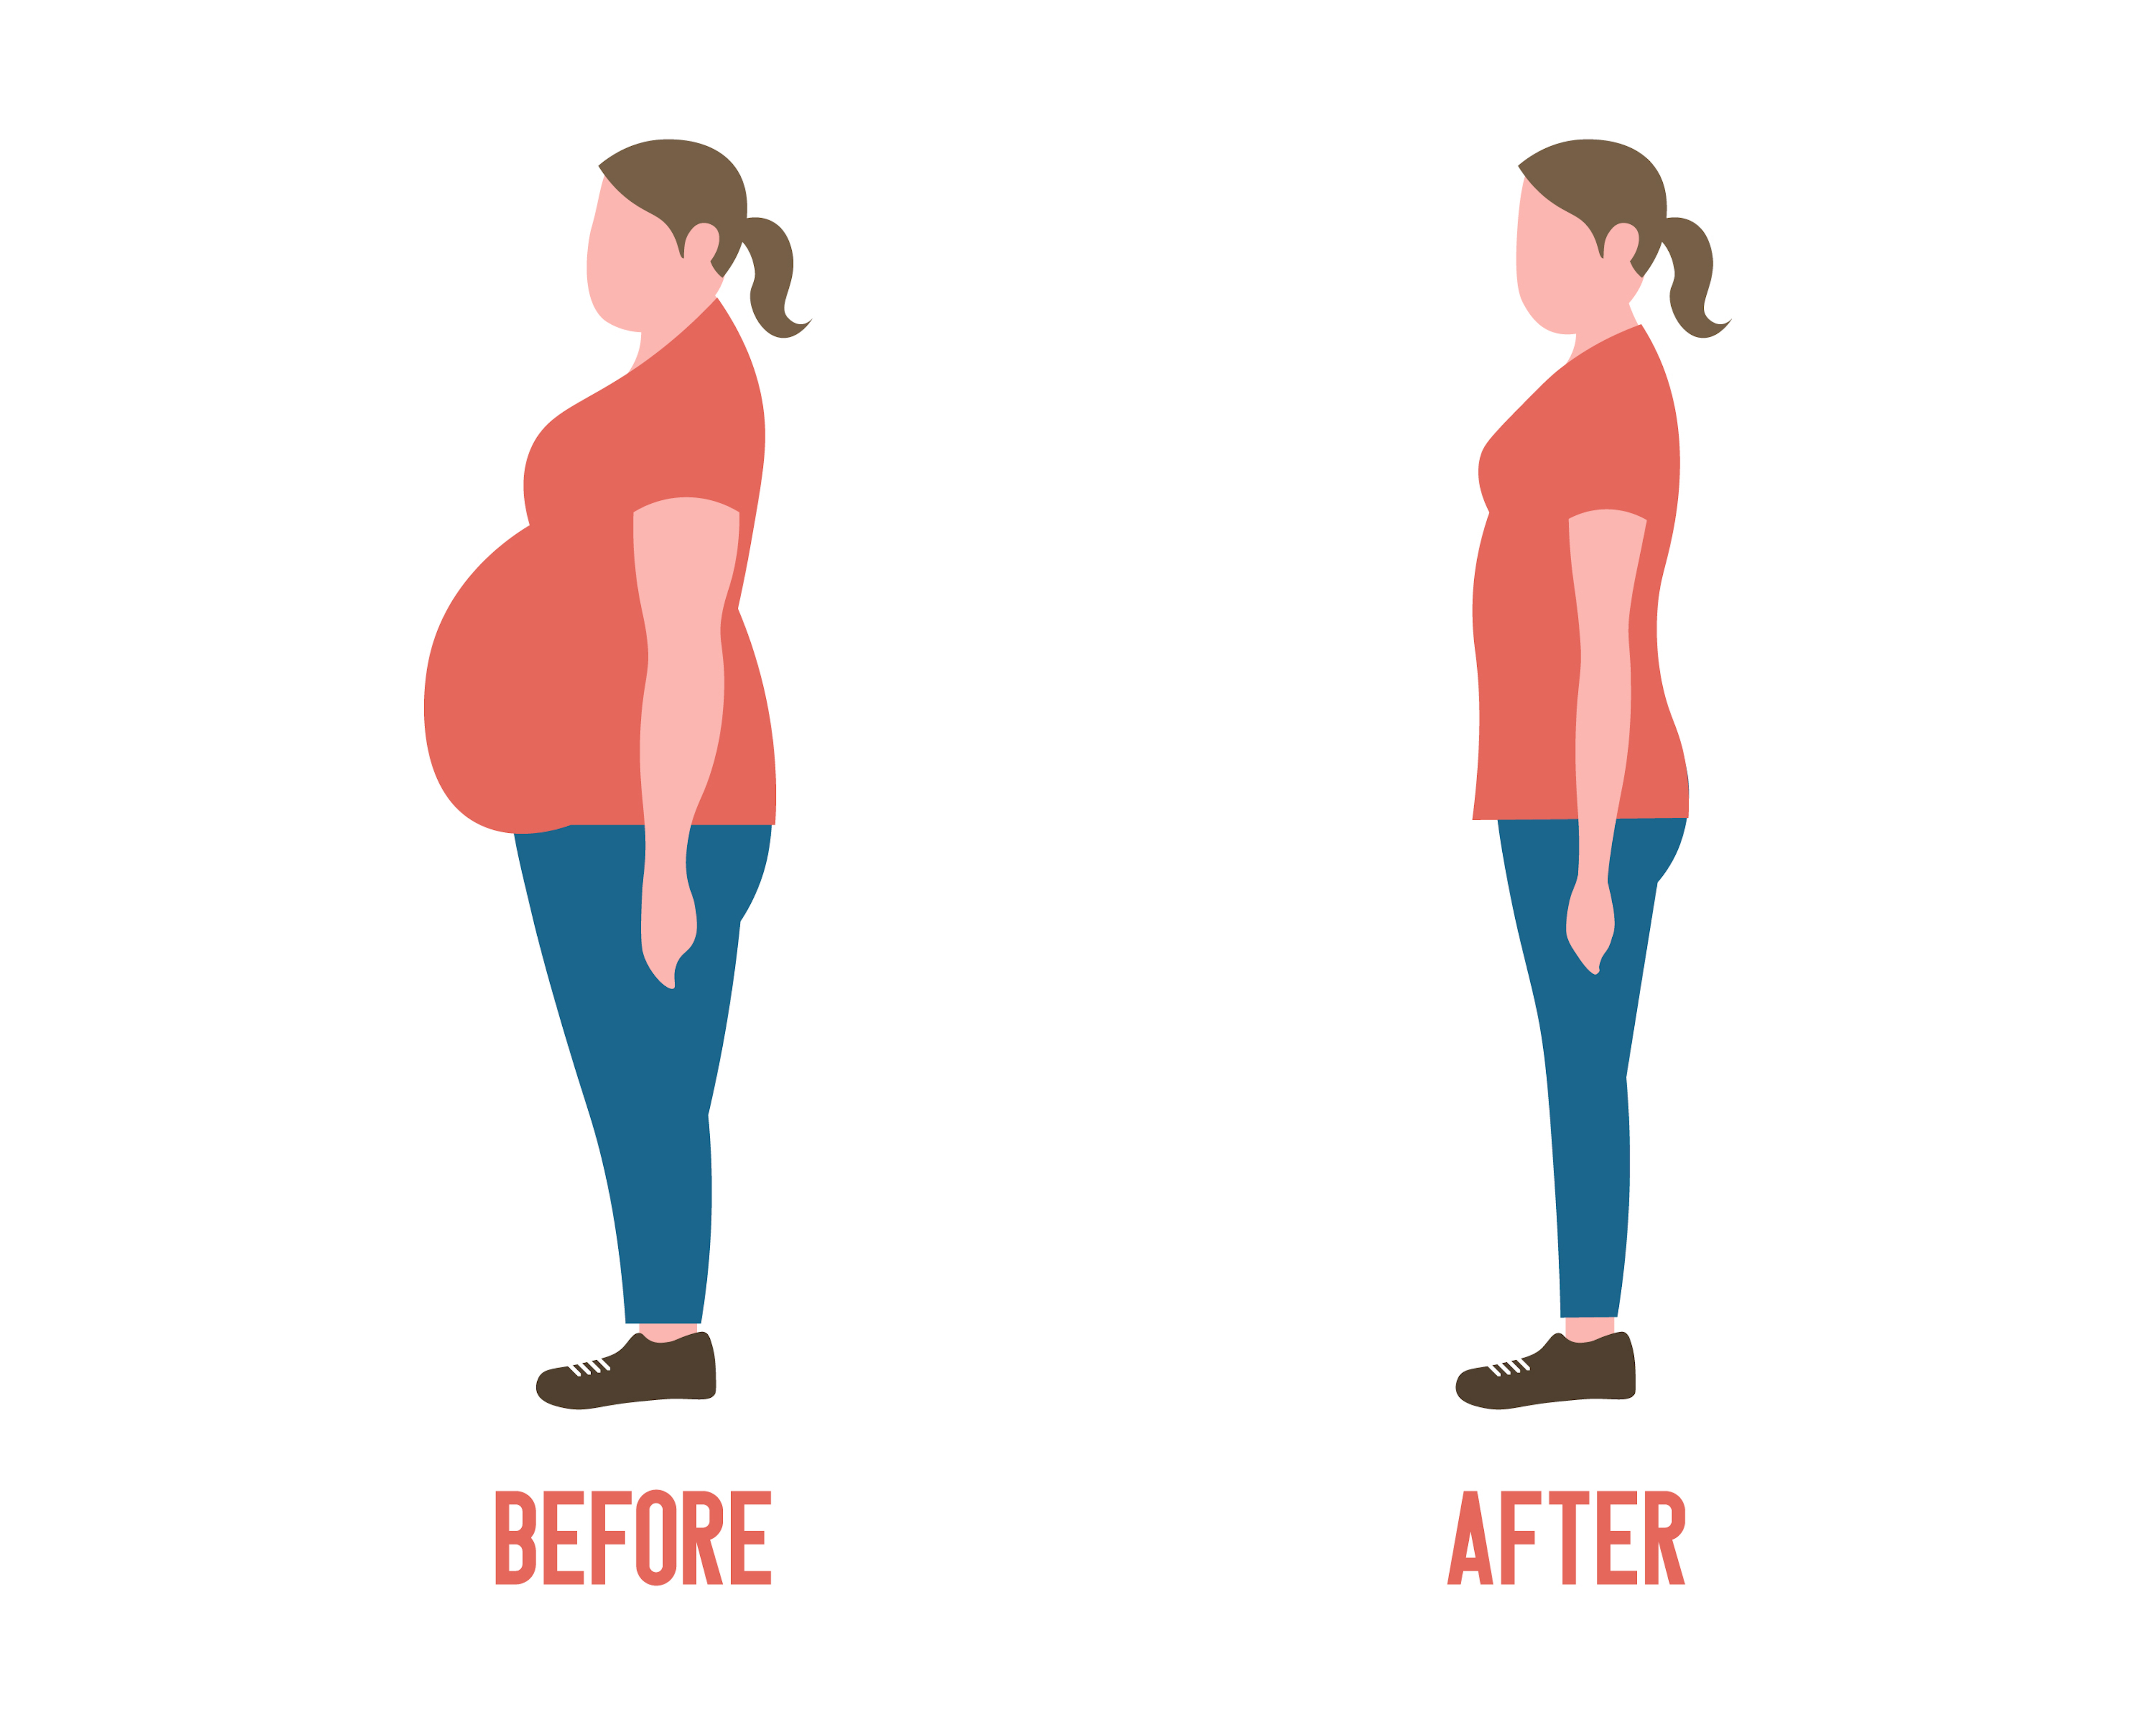 Body Shape Women Before And After Weight Loss Download Free Vectors Clipart Graphics Vector Art